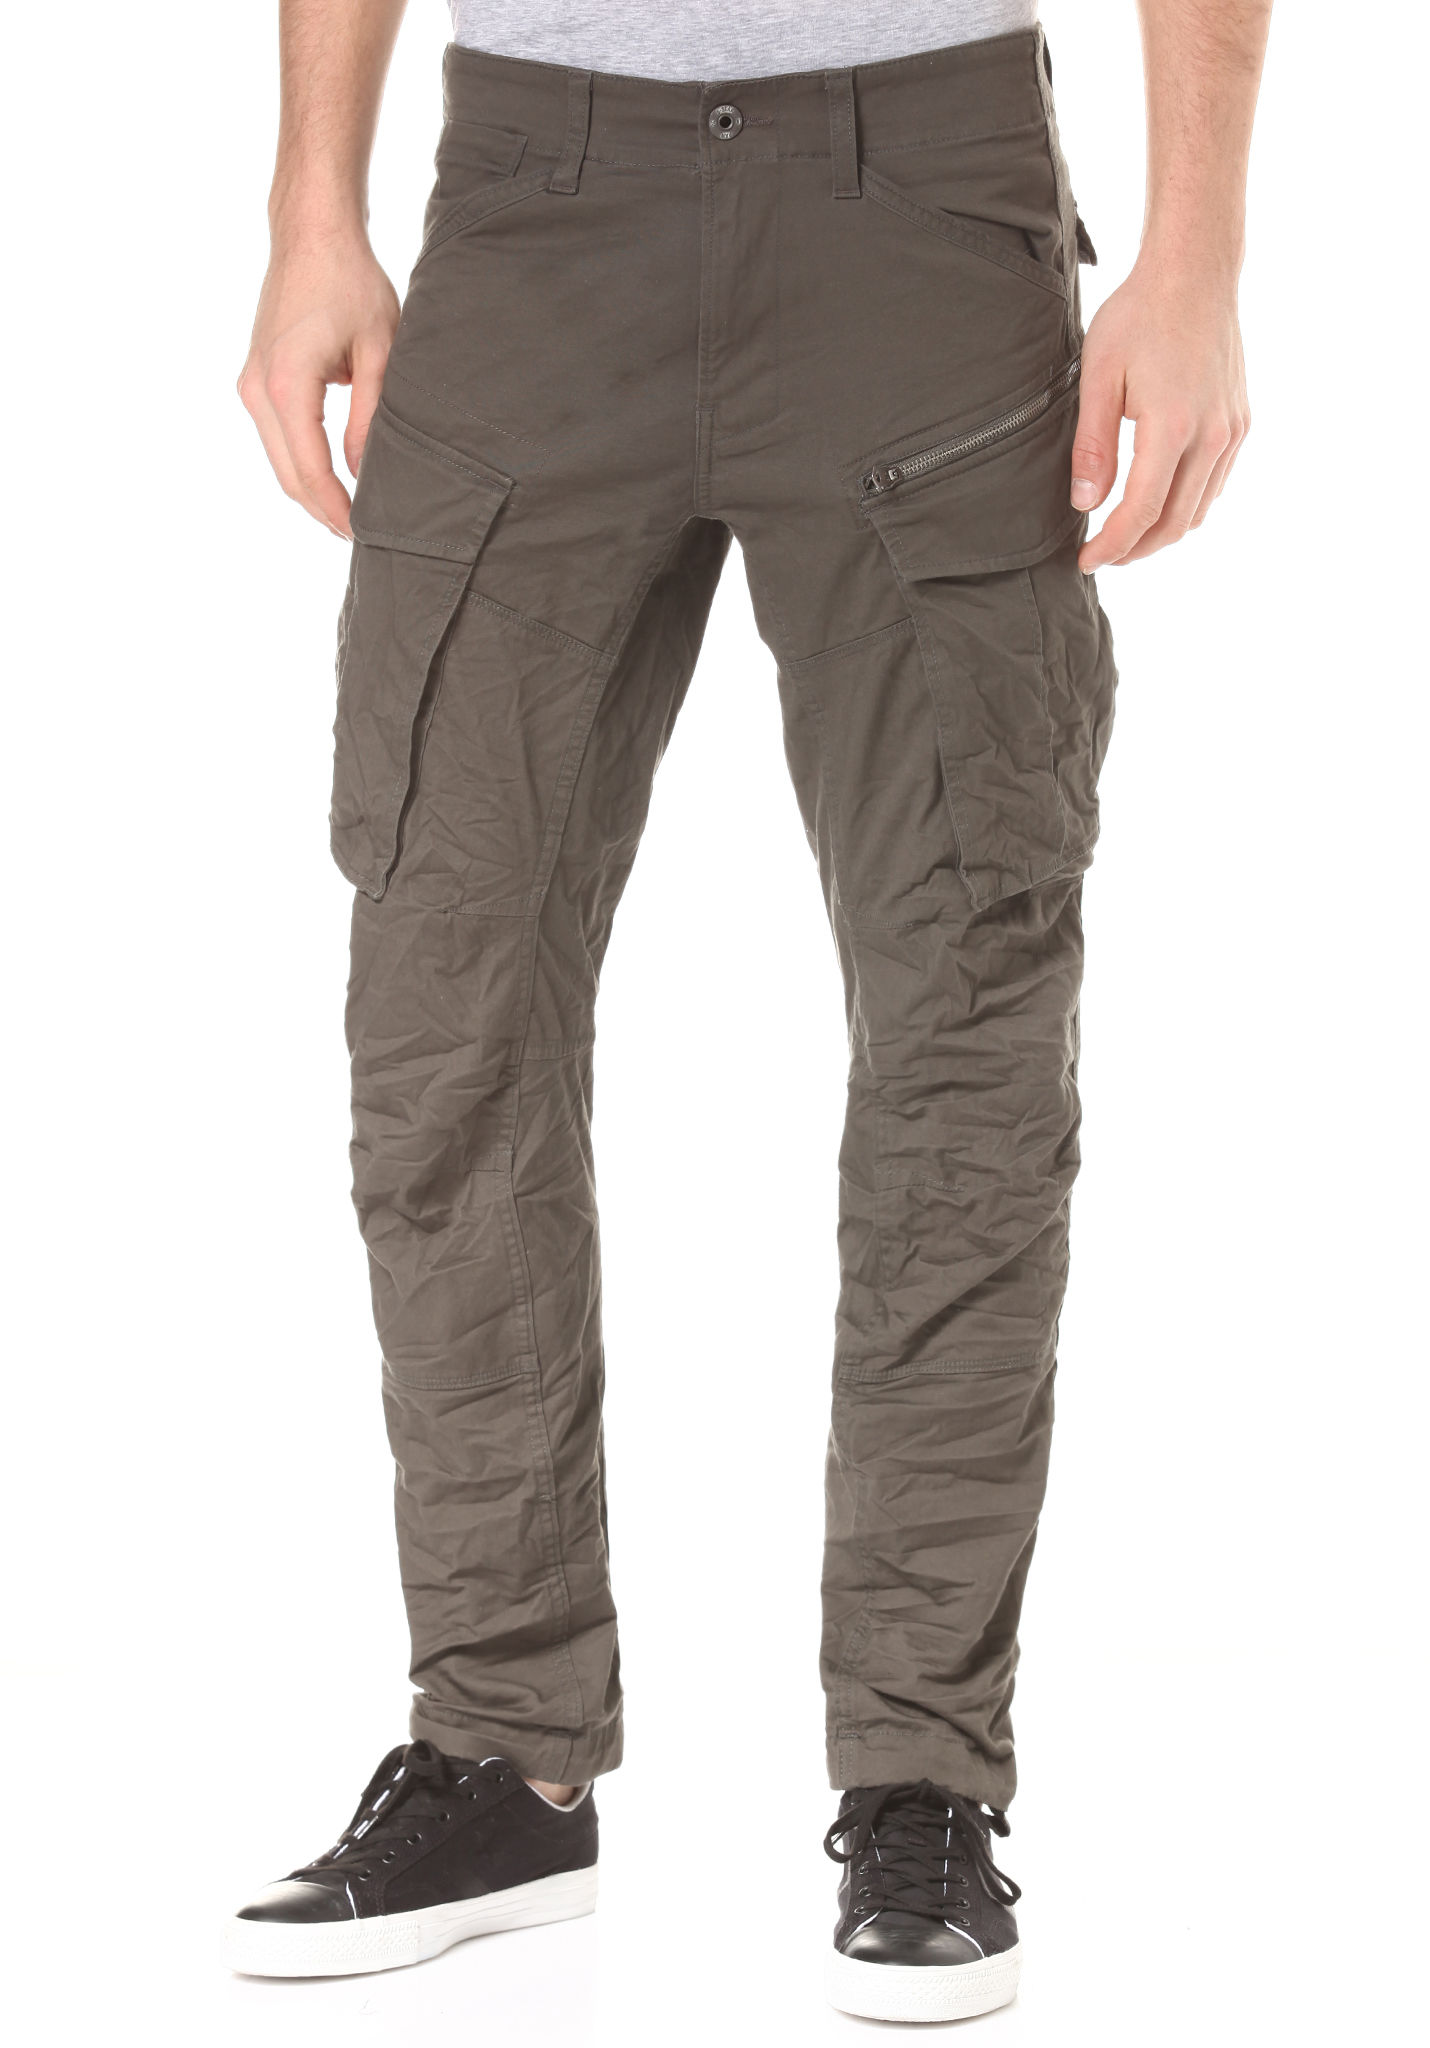 589b7d7f68ba G-STAR Rovic Zip 3D Straightapered - Cargo Pants for Men - Grey - Planet  Sports